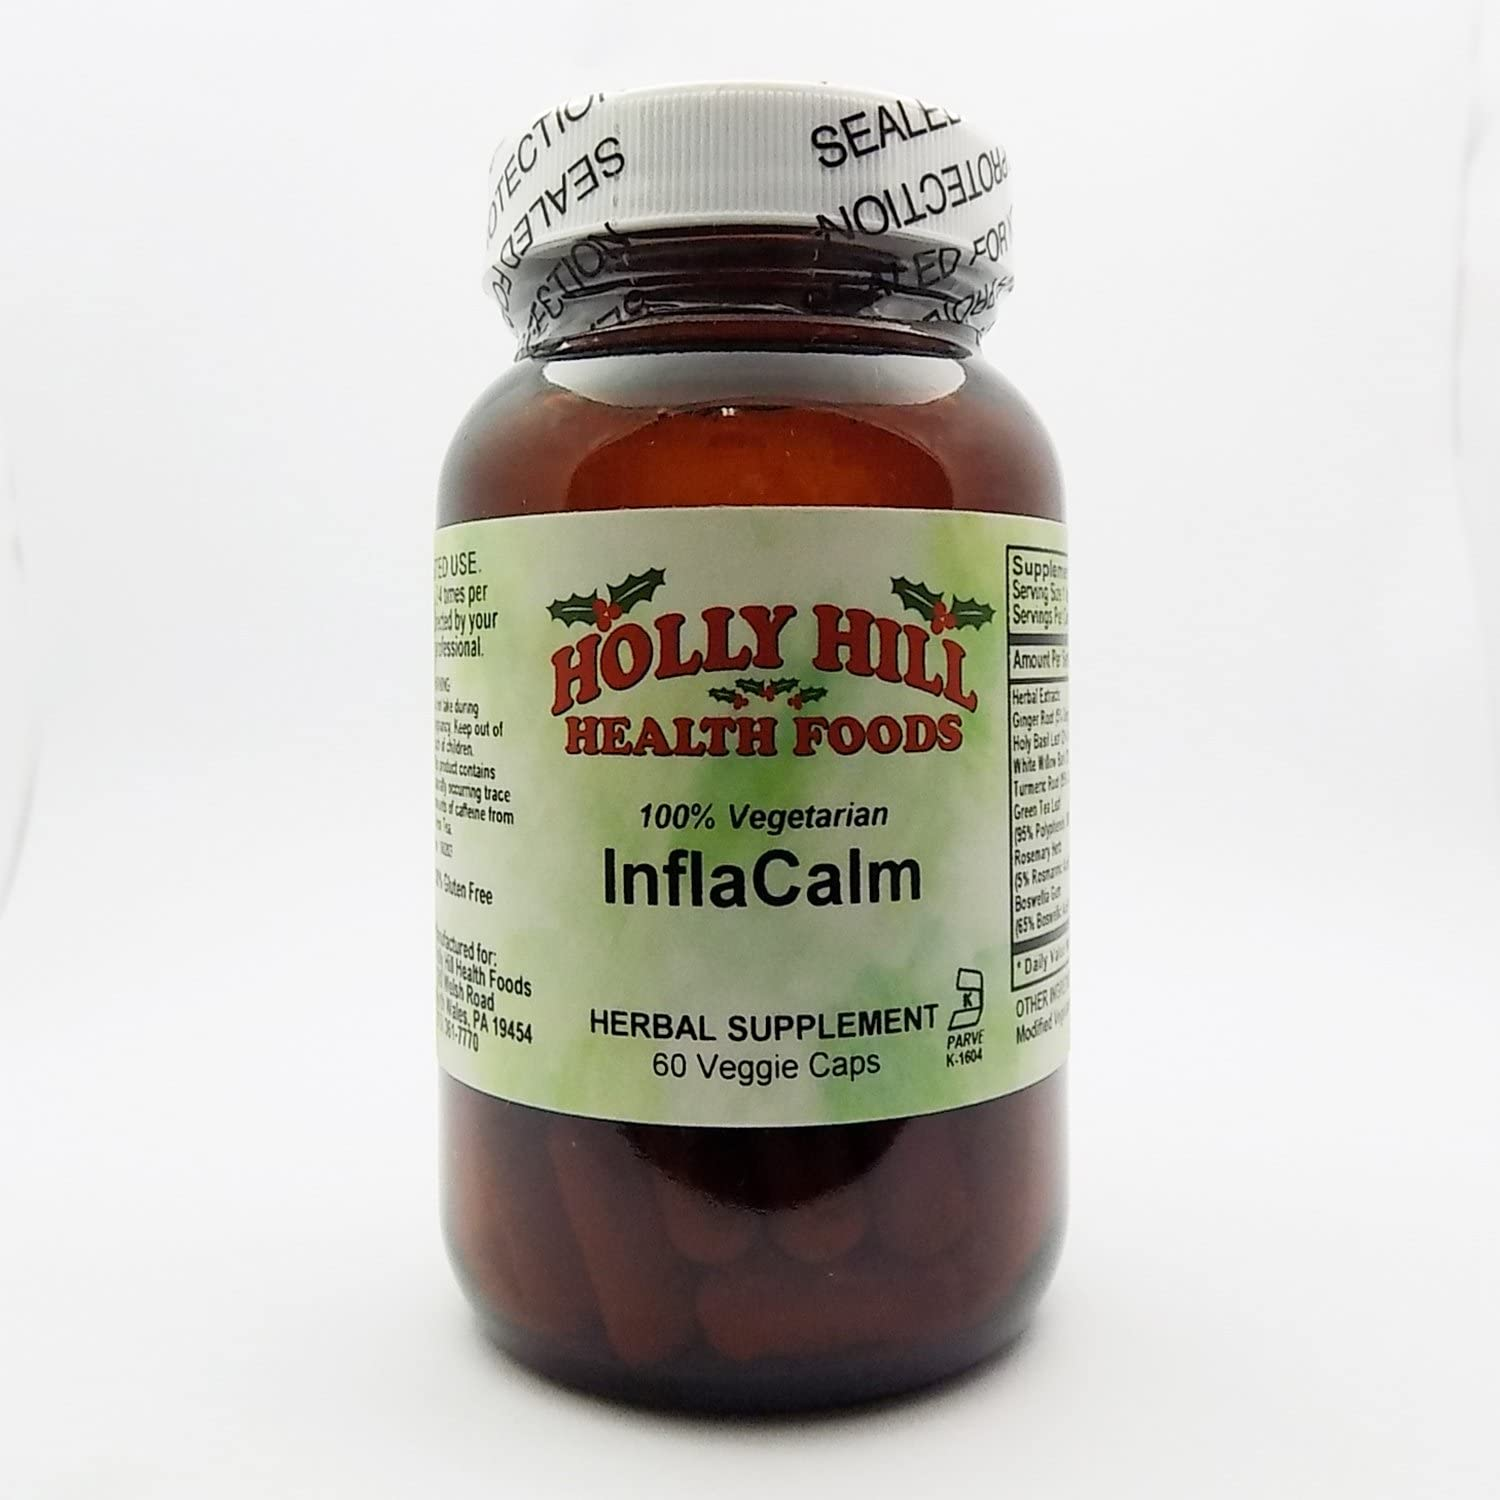 Holly Hill Health Foods, Inflacalm, 60 Vegetarian Capsules